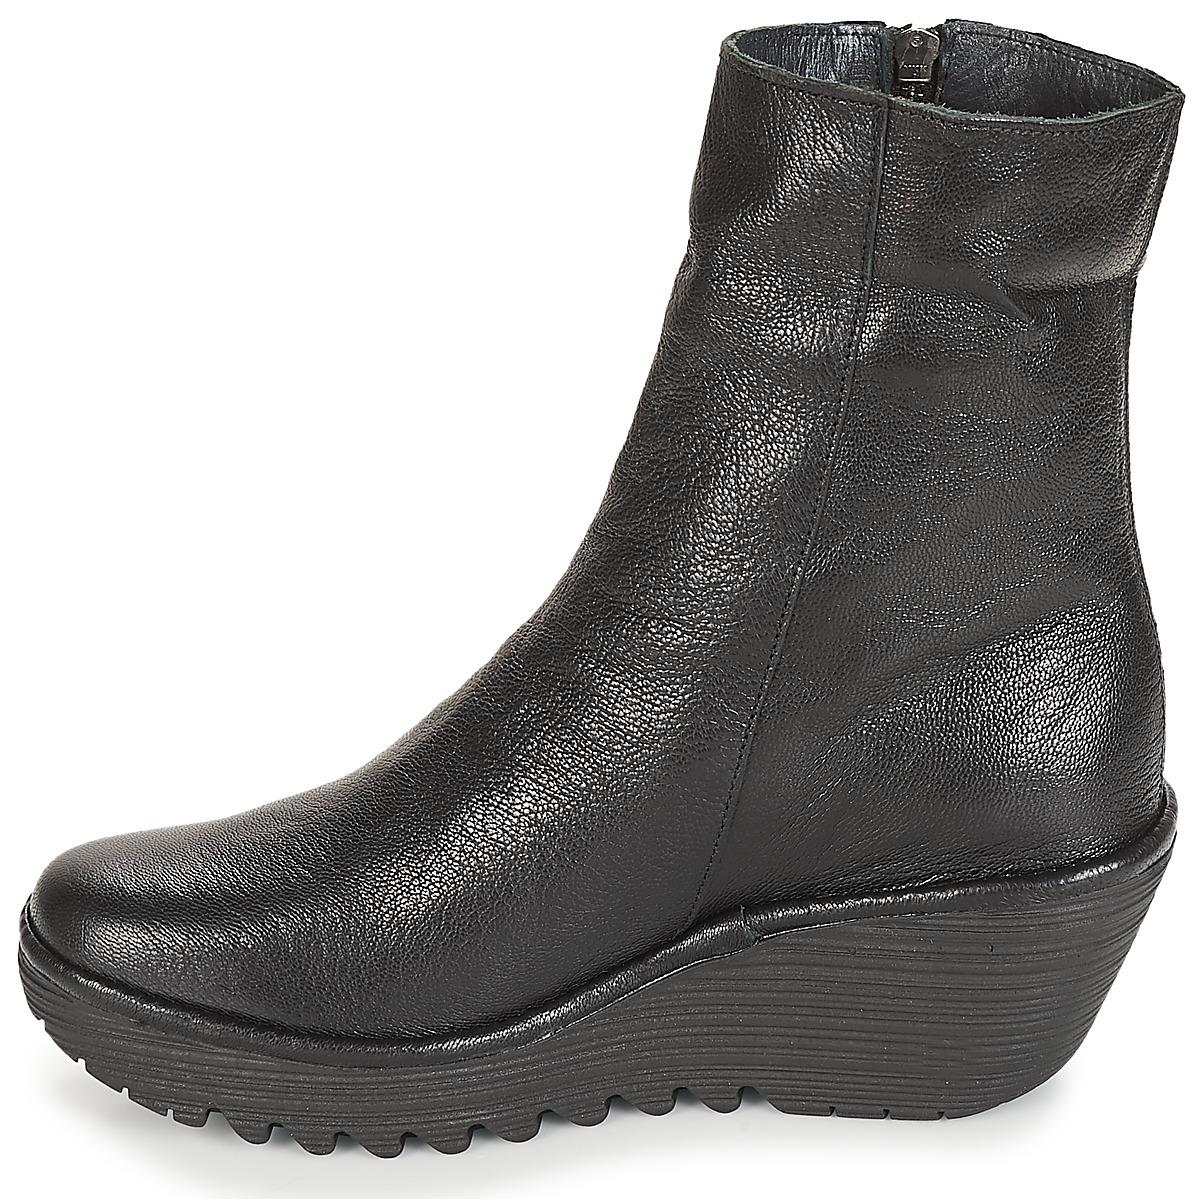 Fly London Leather Yemi Women's Low Ankle Boots In Black